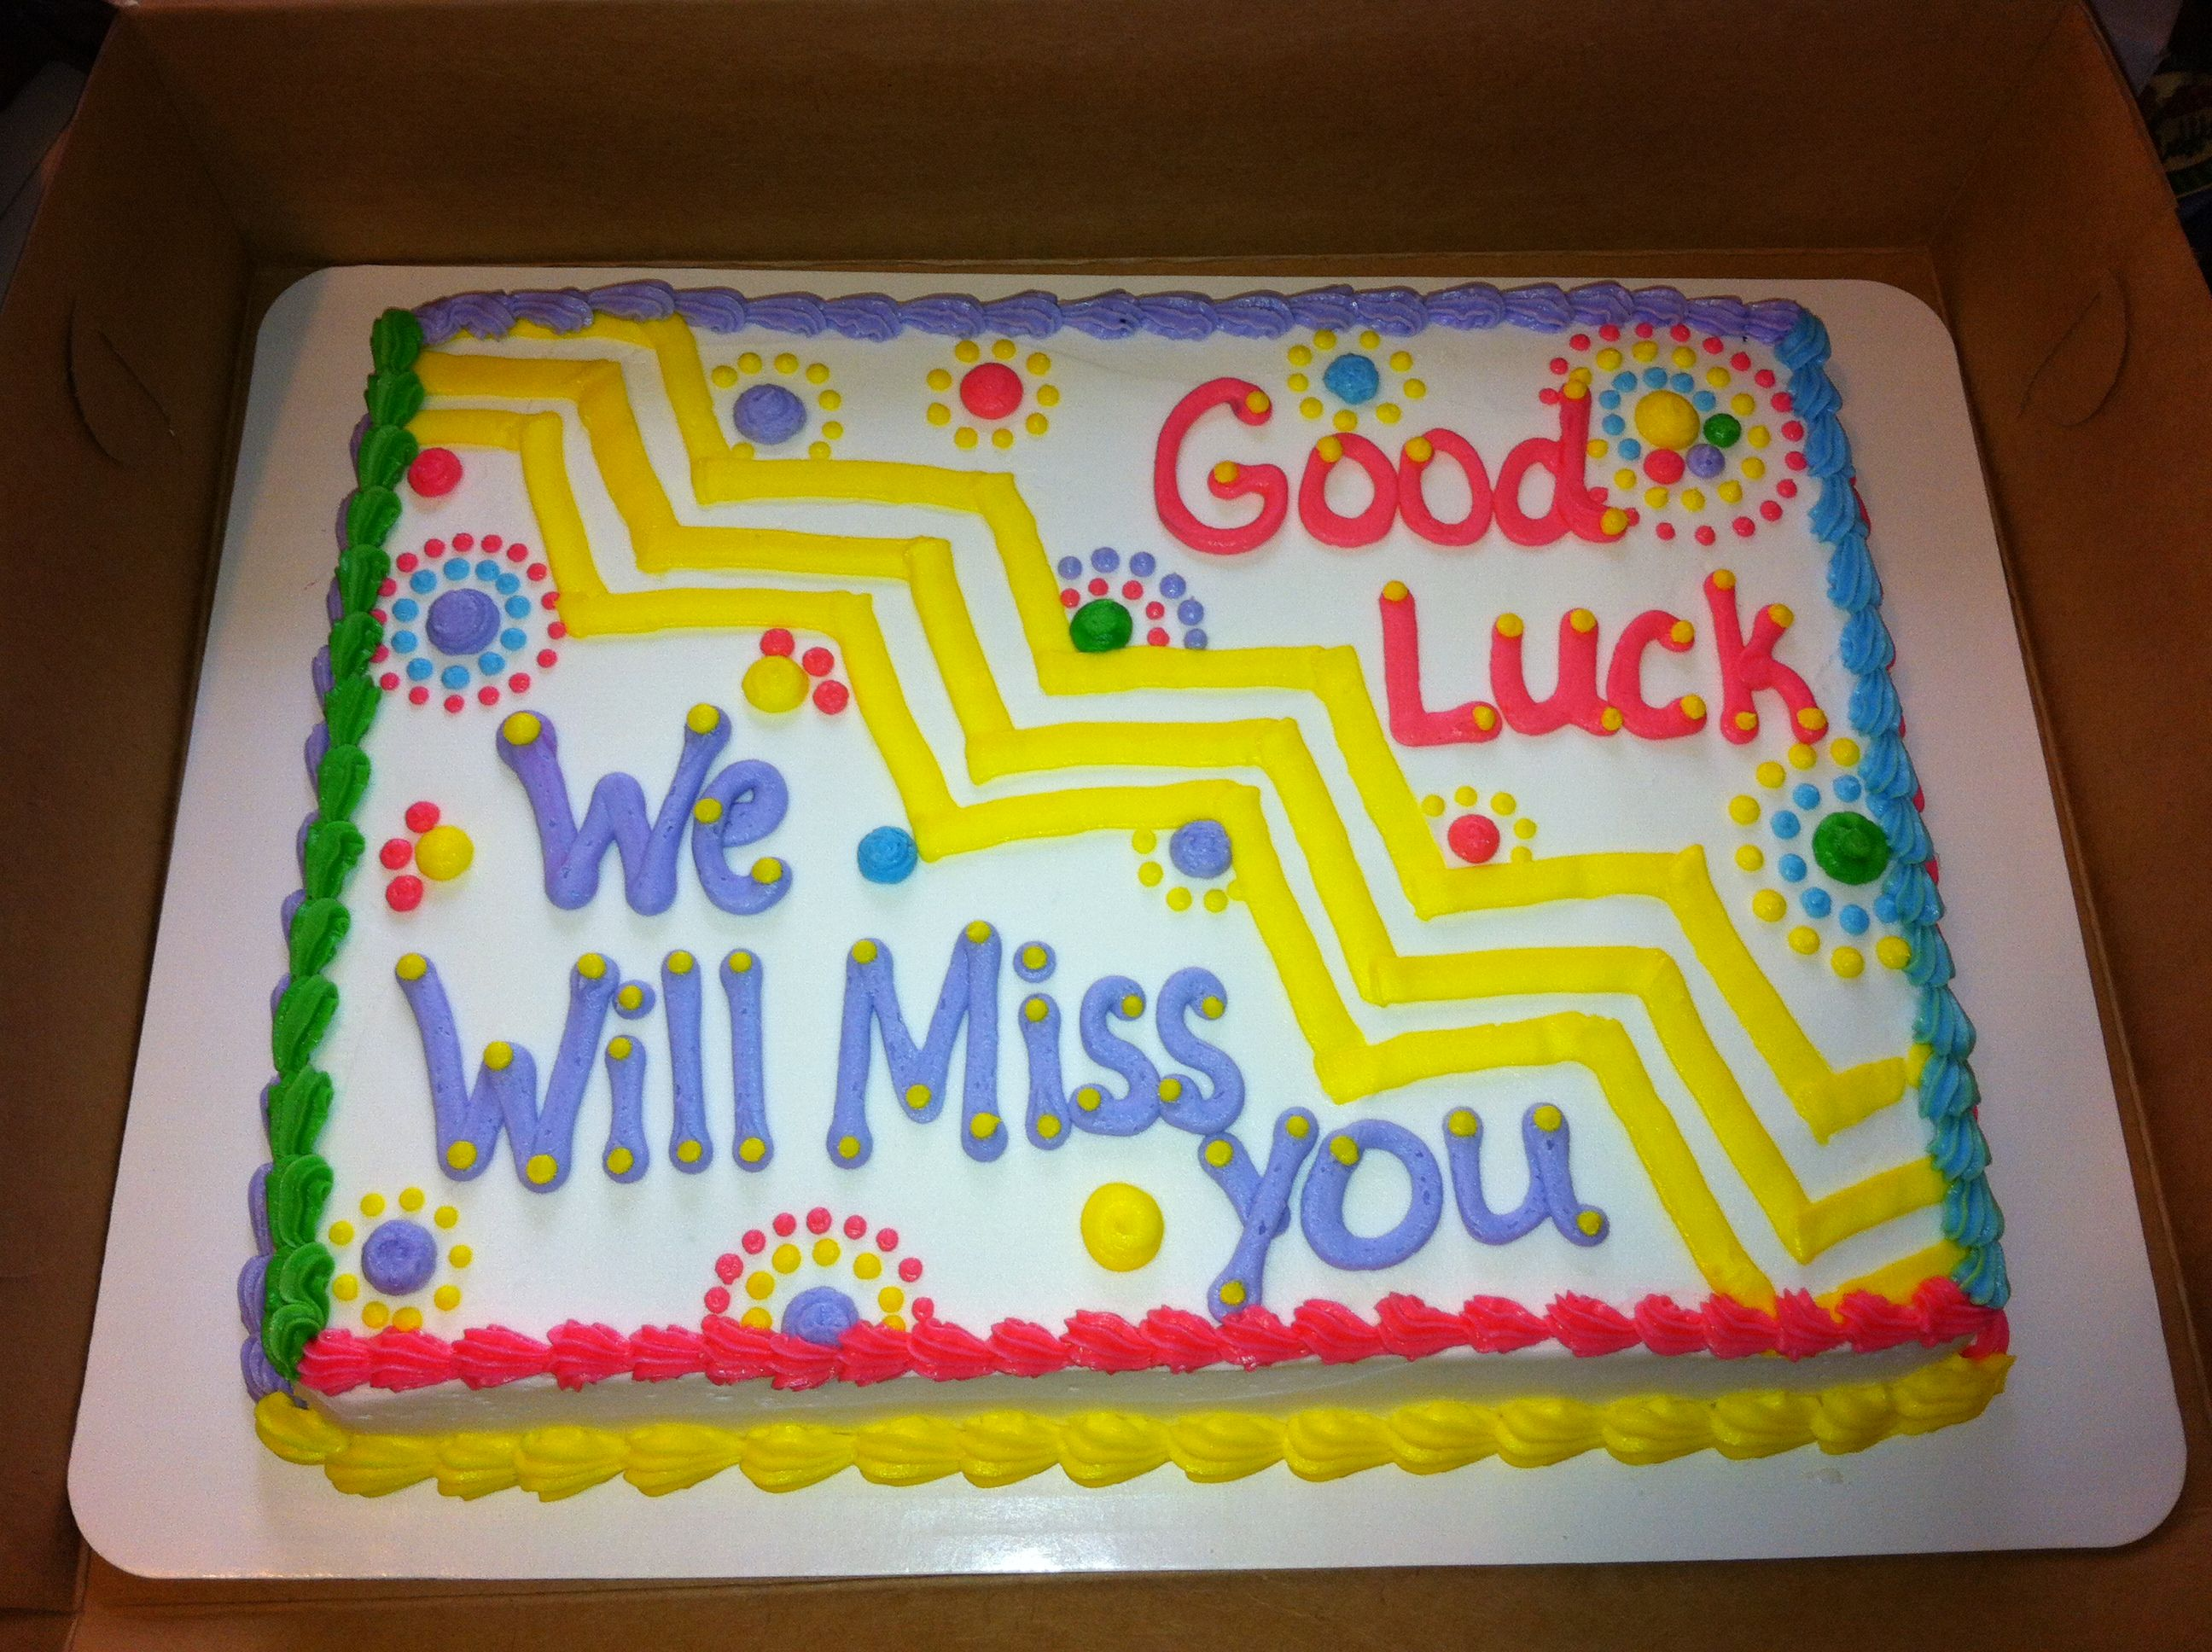 Farewell cake | My Cake Creations | Pinterest | Cake, Retirement ...